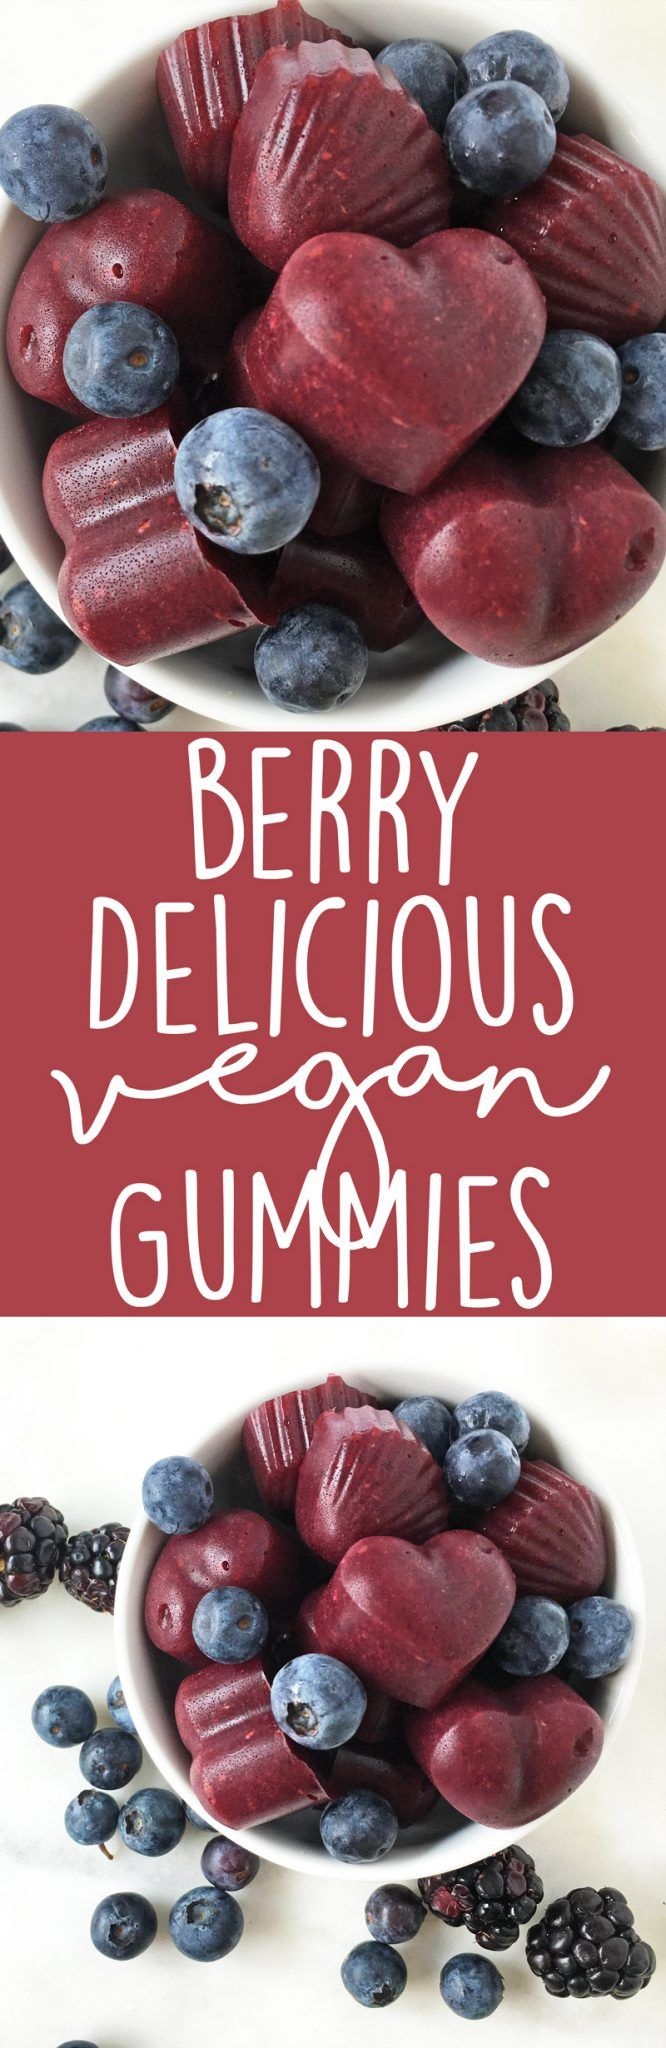 Berry Delicious Vegan Gummies | The Crunchy Chronicles